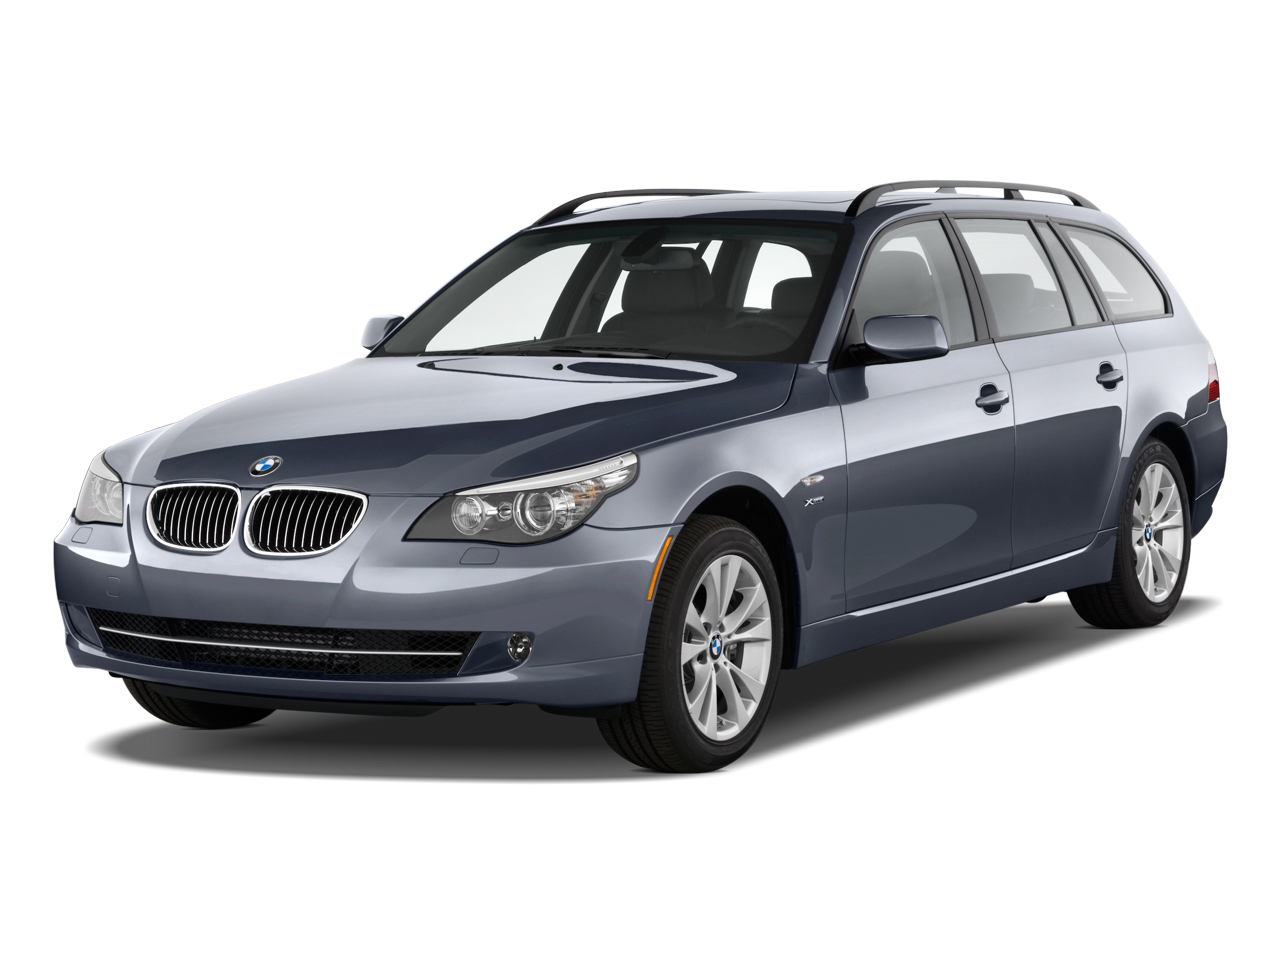 wagon review 2010 bmw 5 series sports wagon. Black Bedroom Furniture Sets. Home Design Ideas